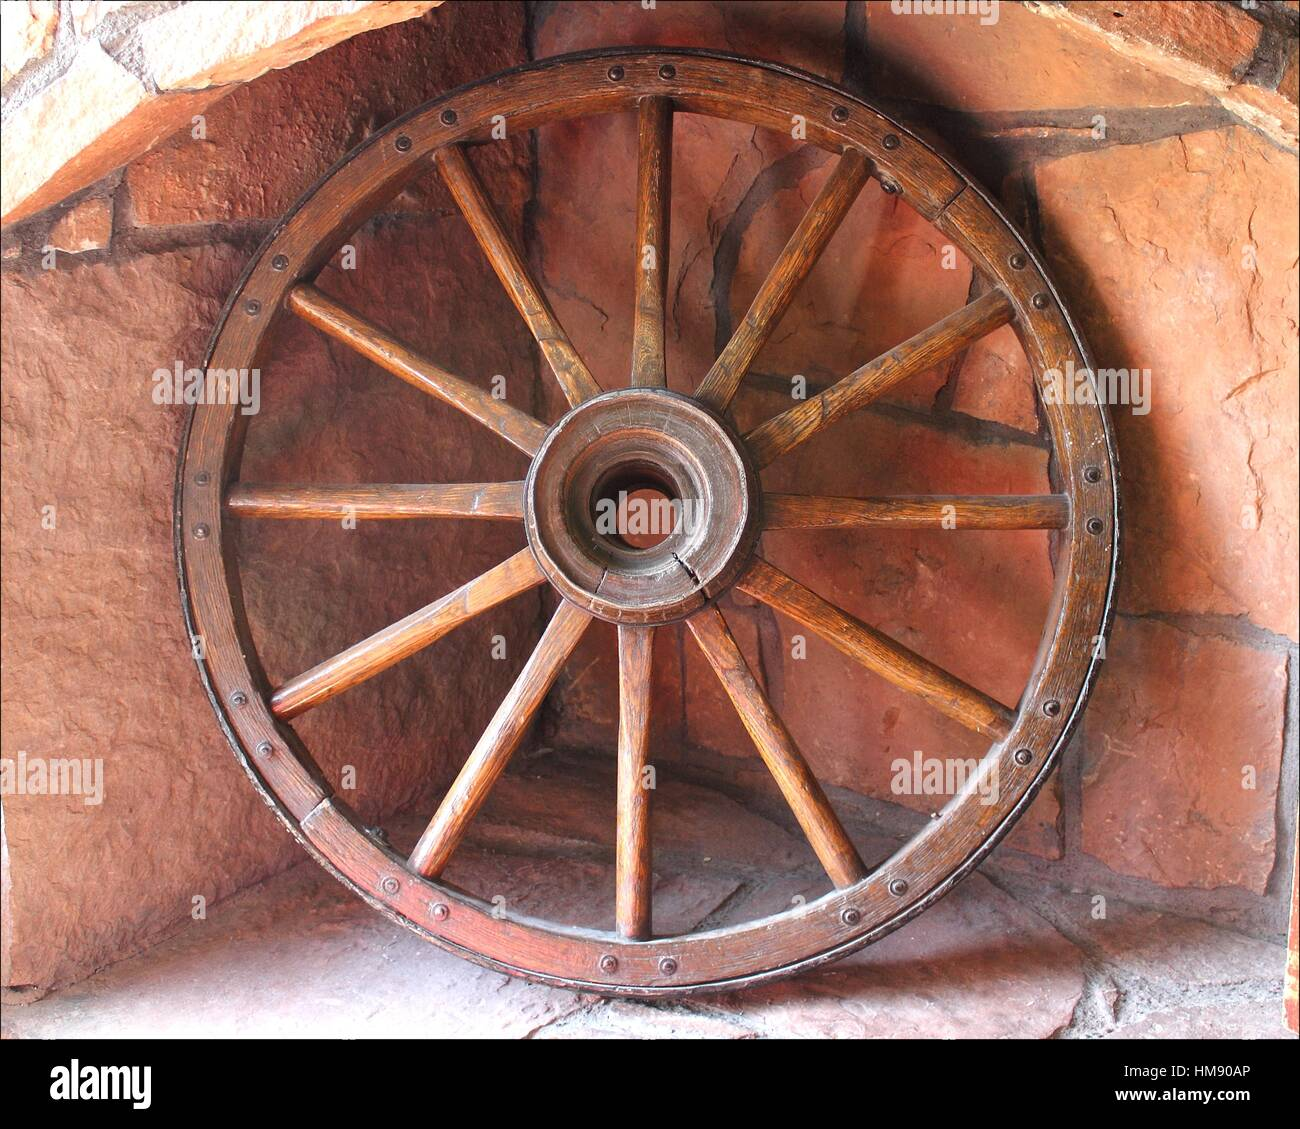 An Old Wagon Wheels Sits In A Stone Hearth In The Grand Canyon, Arizona